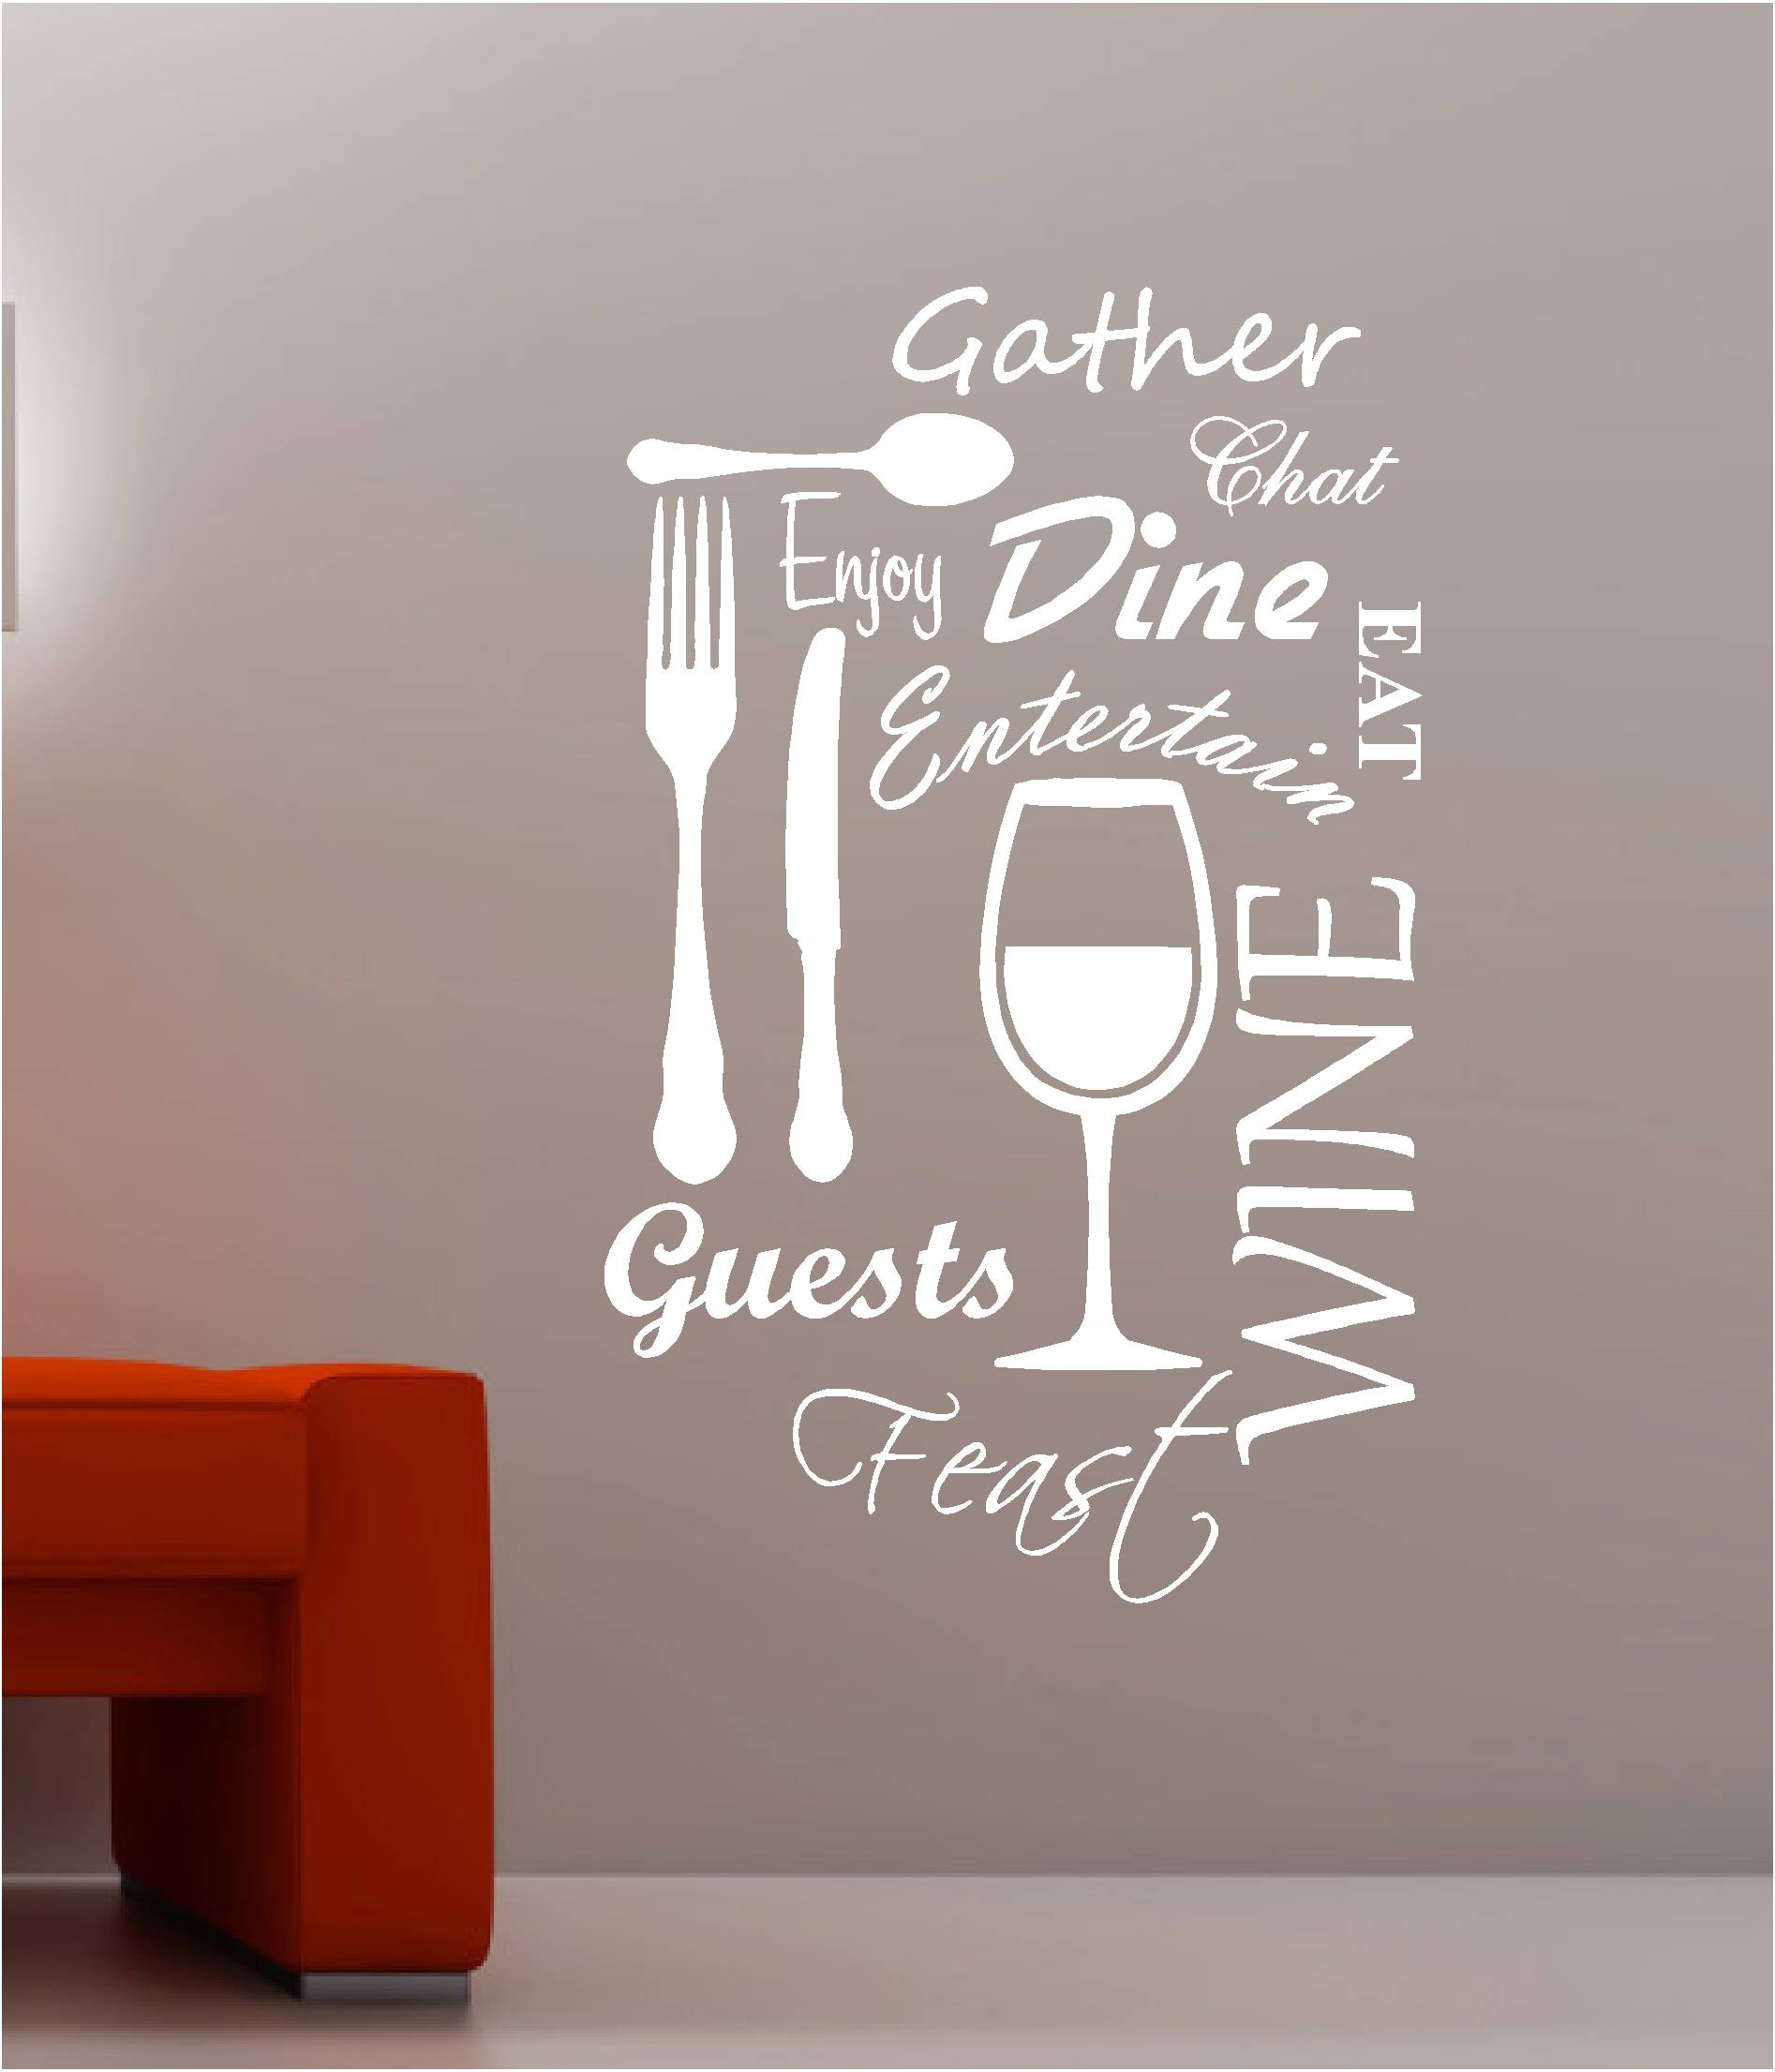 Kitchen : Wall Decor Affordable Wall Art Wall Decor Paintings Regarding Recent Kitchen And Dining Wall Art (View 9 of 25)